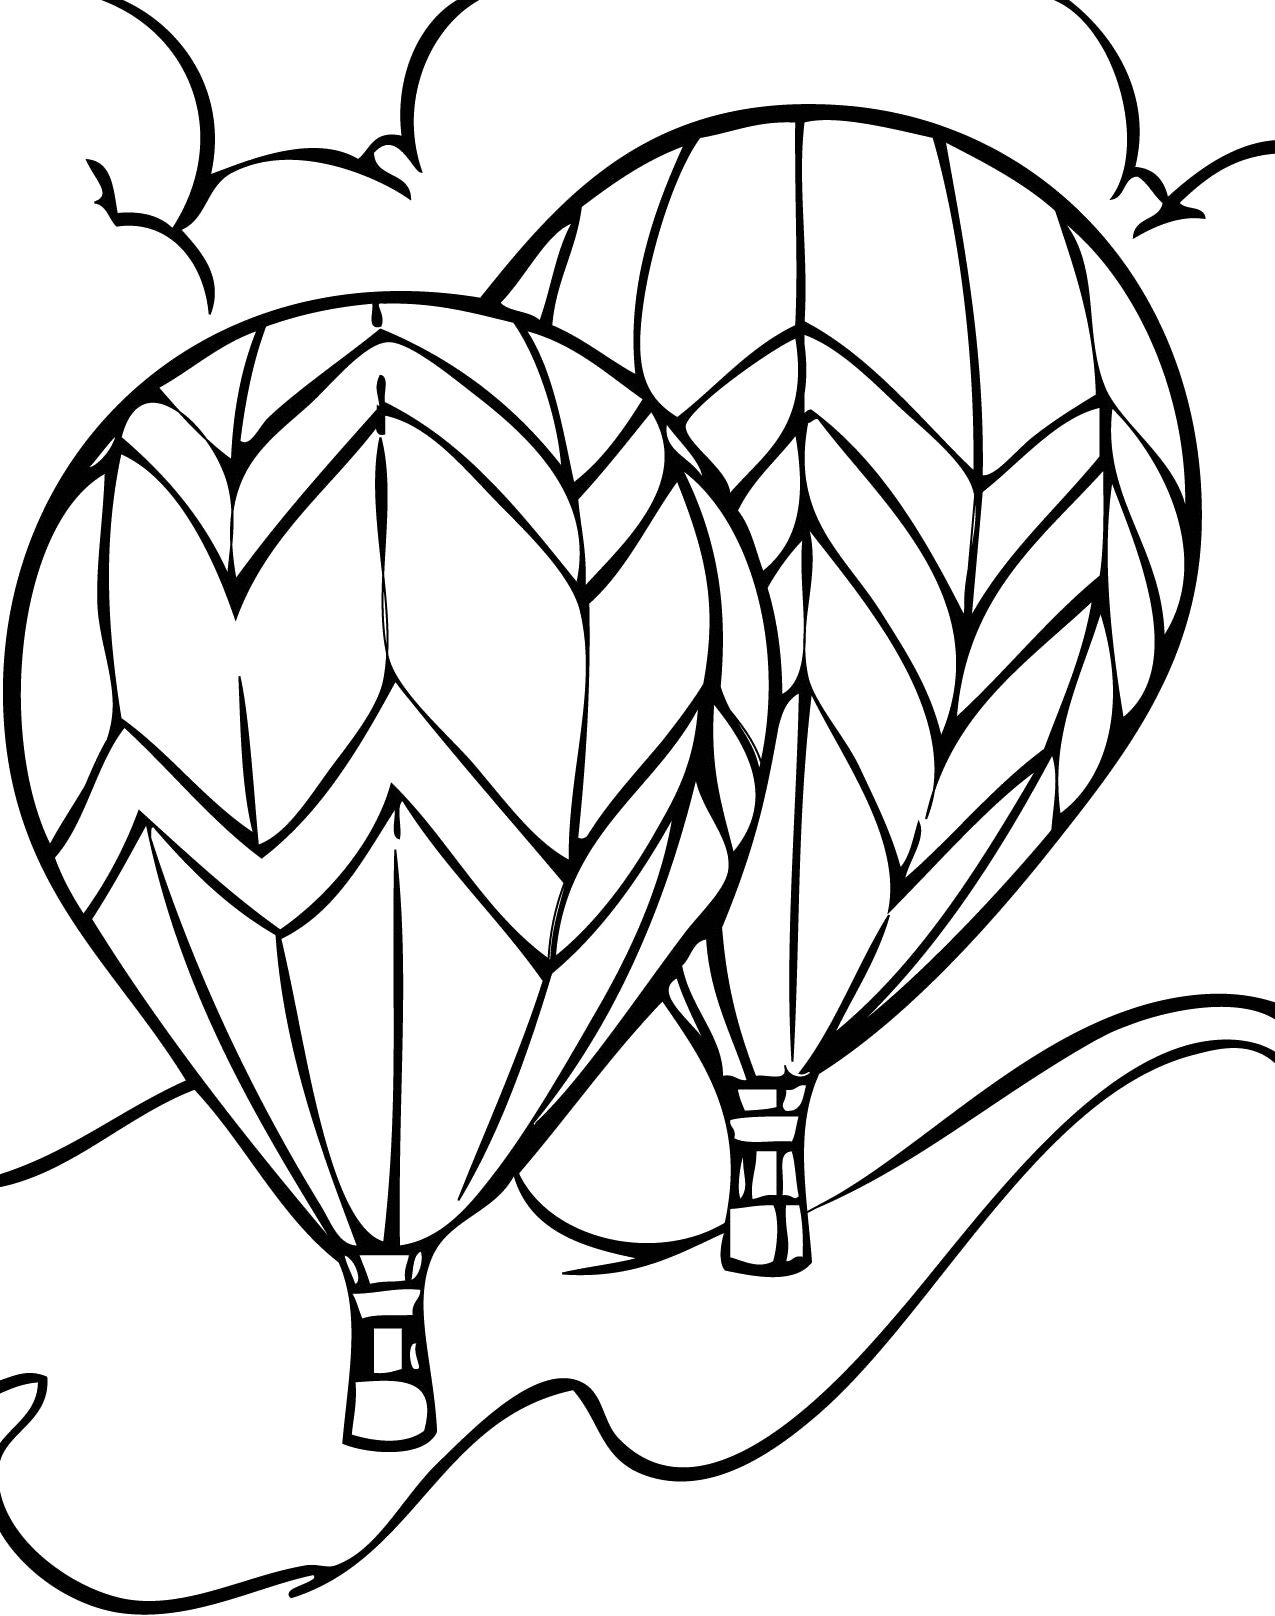 Coloring Pages Large Coloring Pages To Print large print coloring pages eassume com sheets printable pages